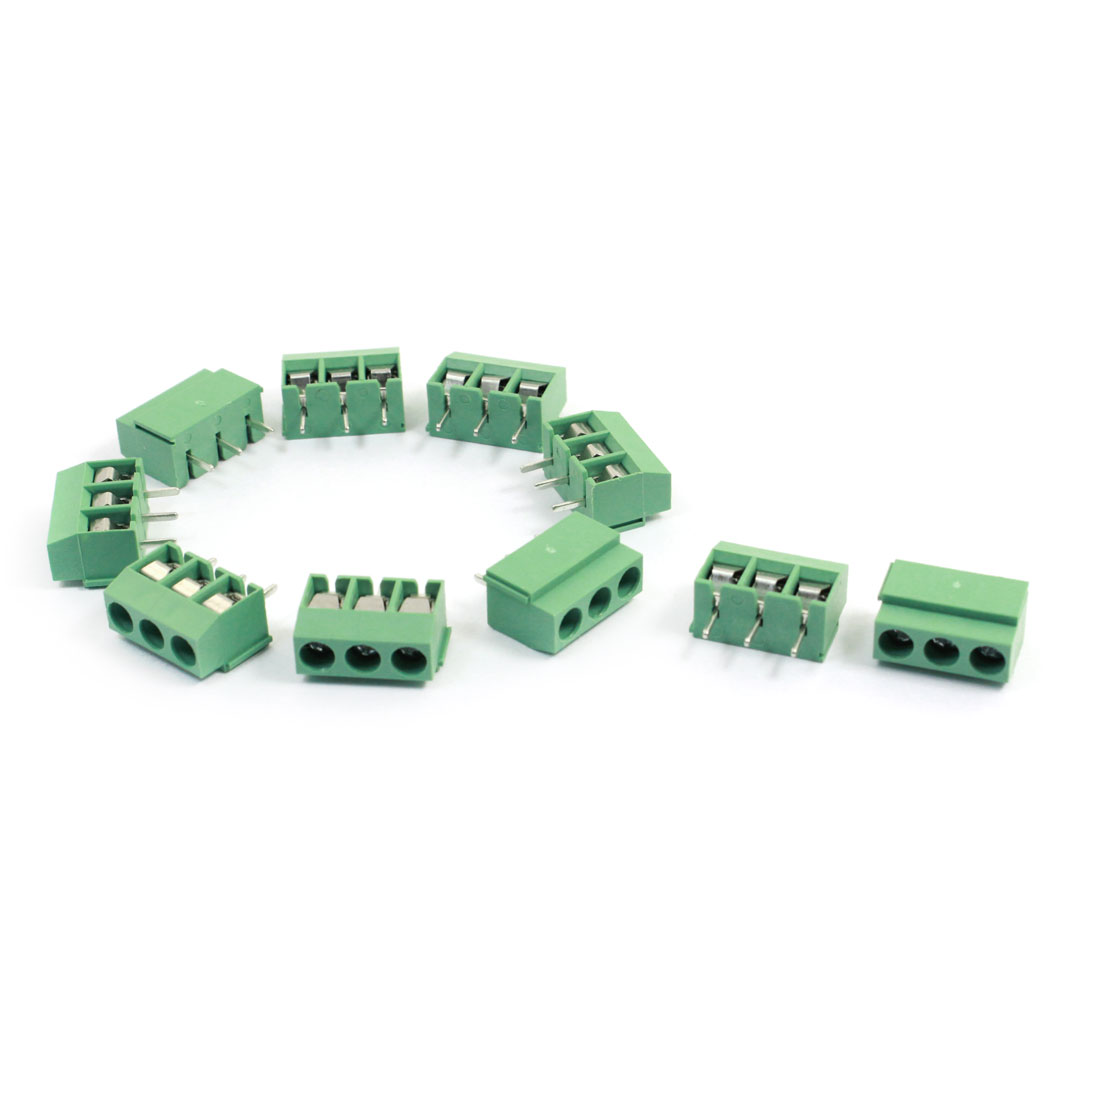 10Pcs 120-3P 3 Position 3 Pin 5mm Pitch Screw Terminal Block 300V 10A